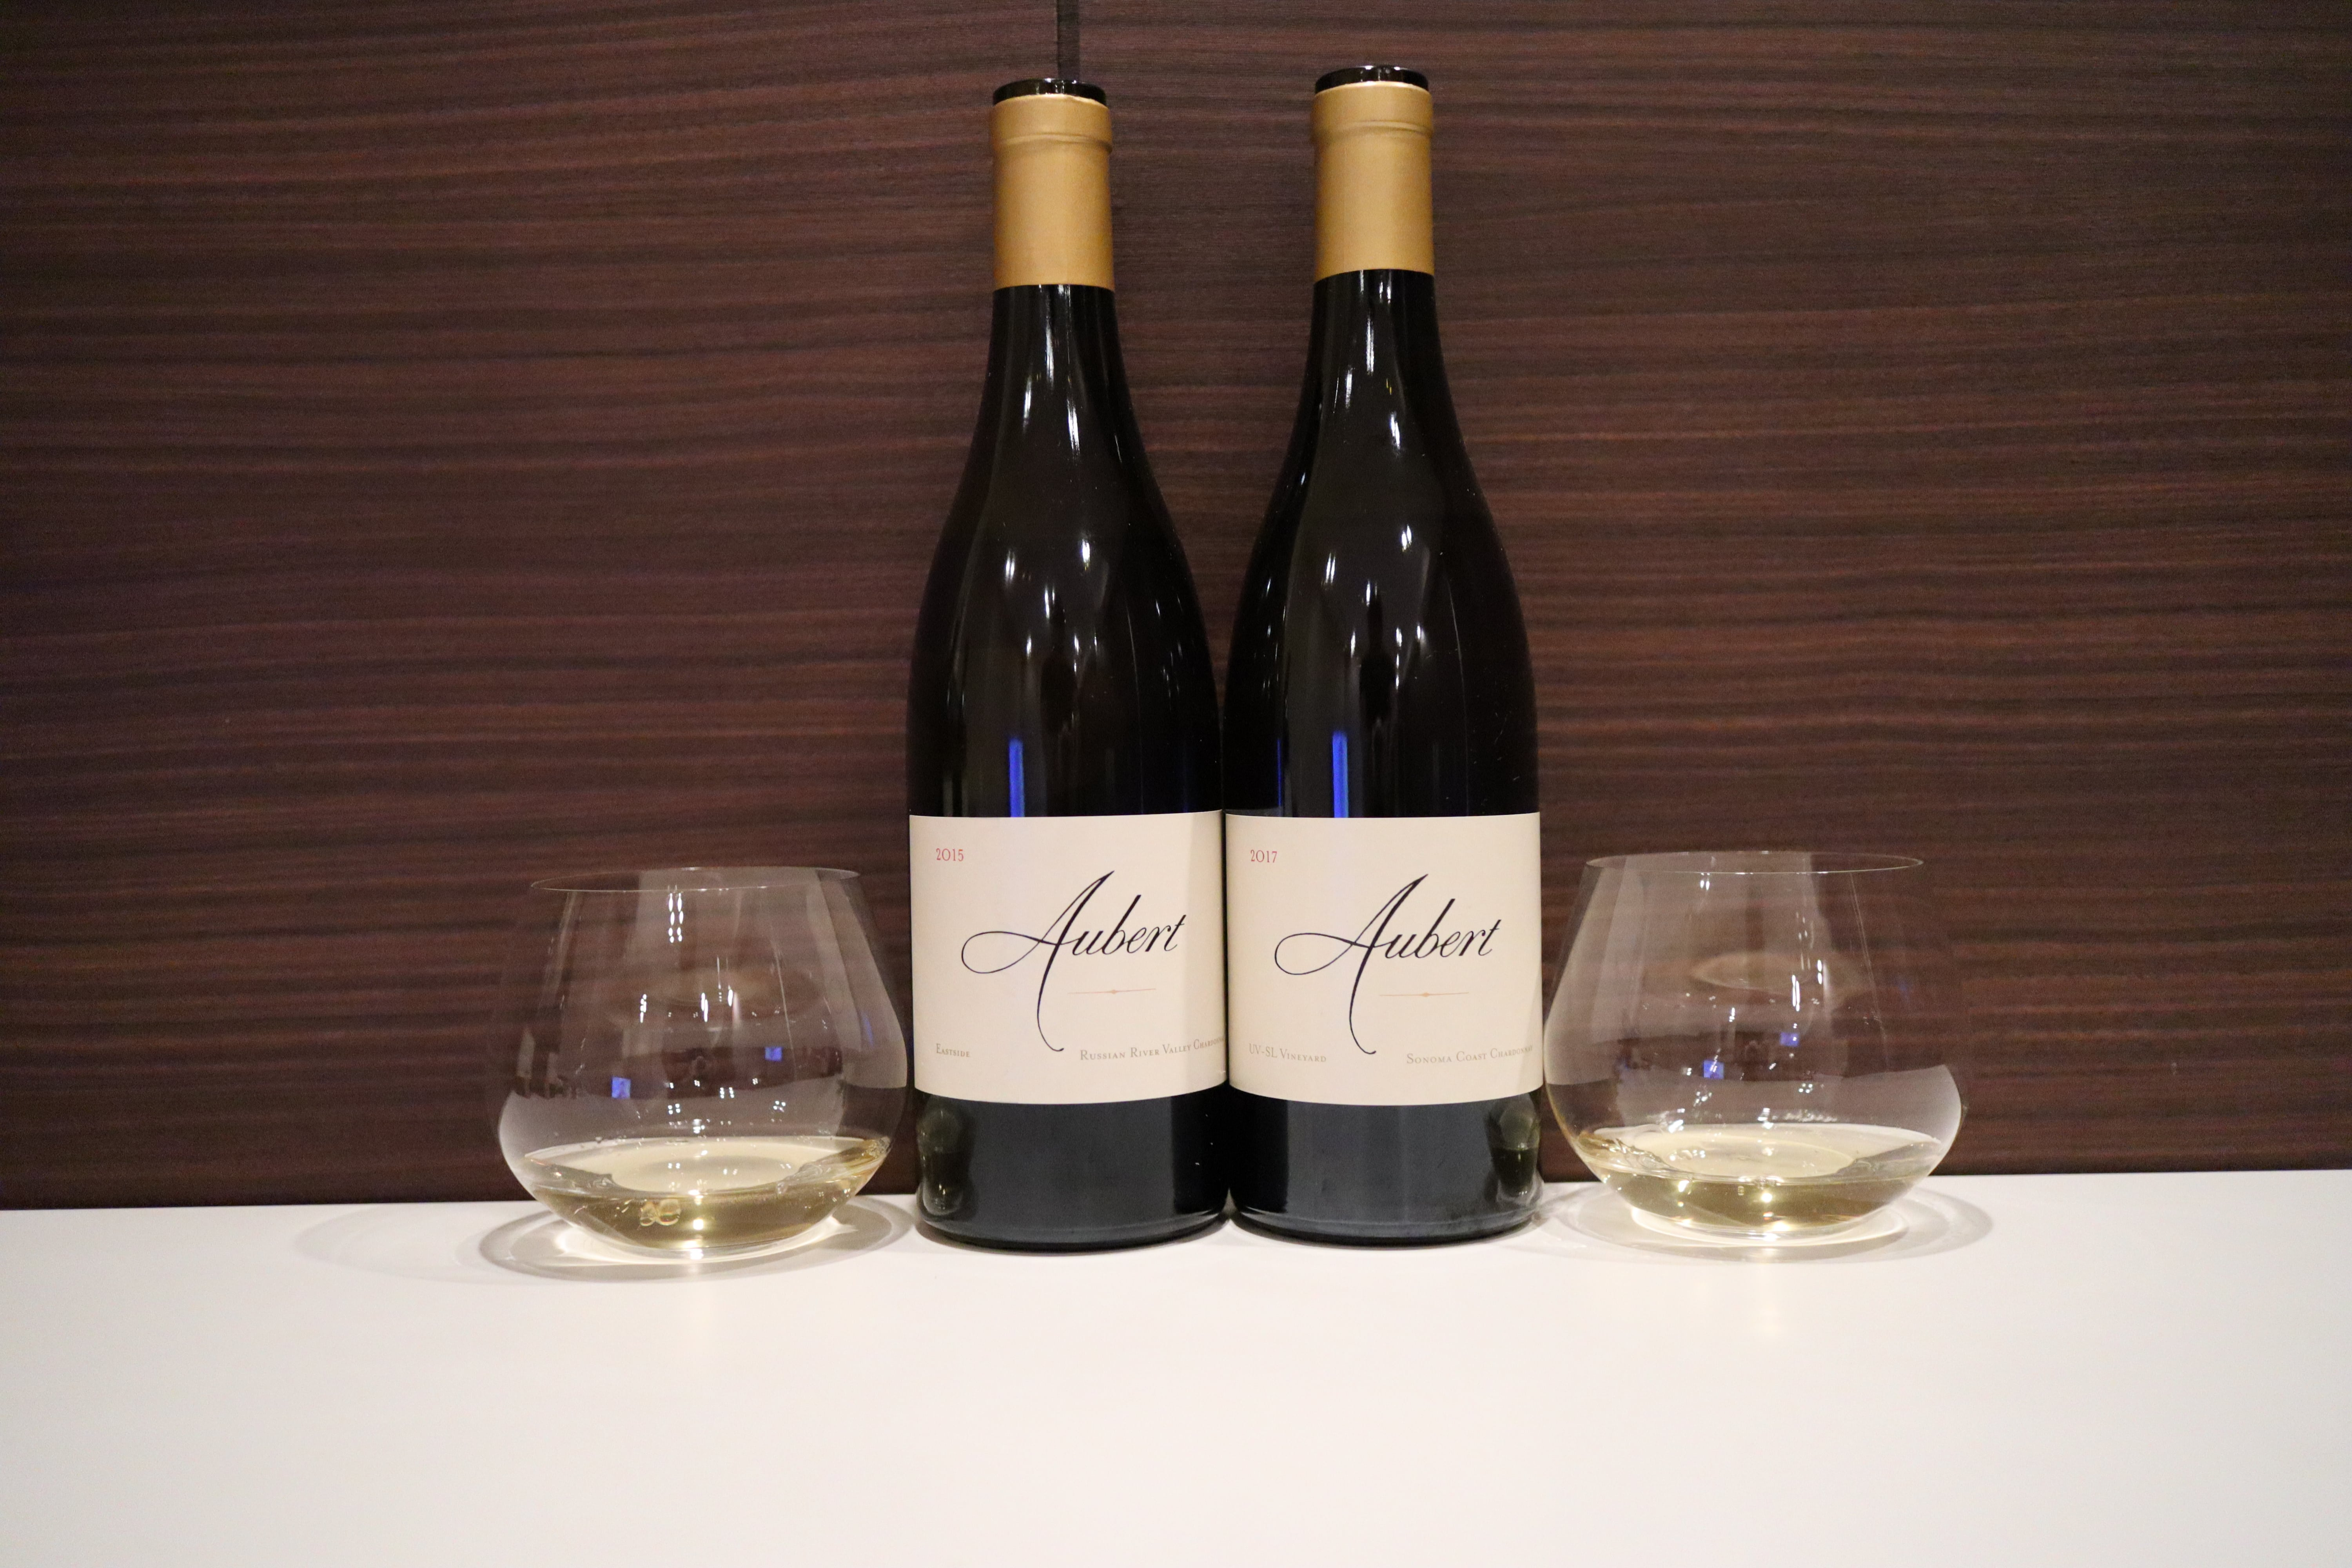 Aubert Vineyards Chardonnay Eastside 2015 vs UV-SL Vineyard 2017